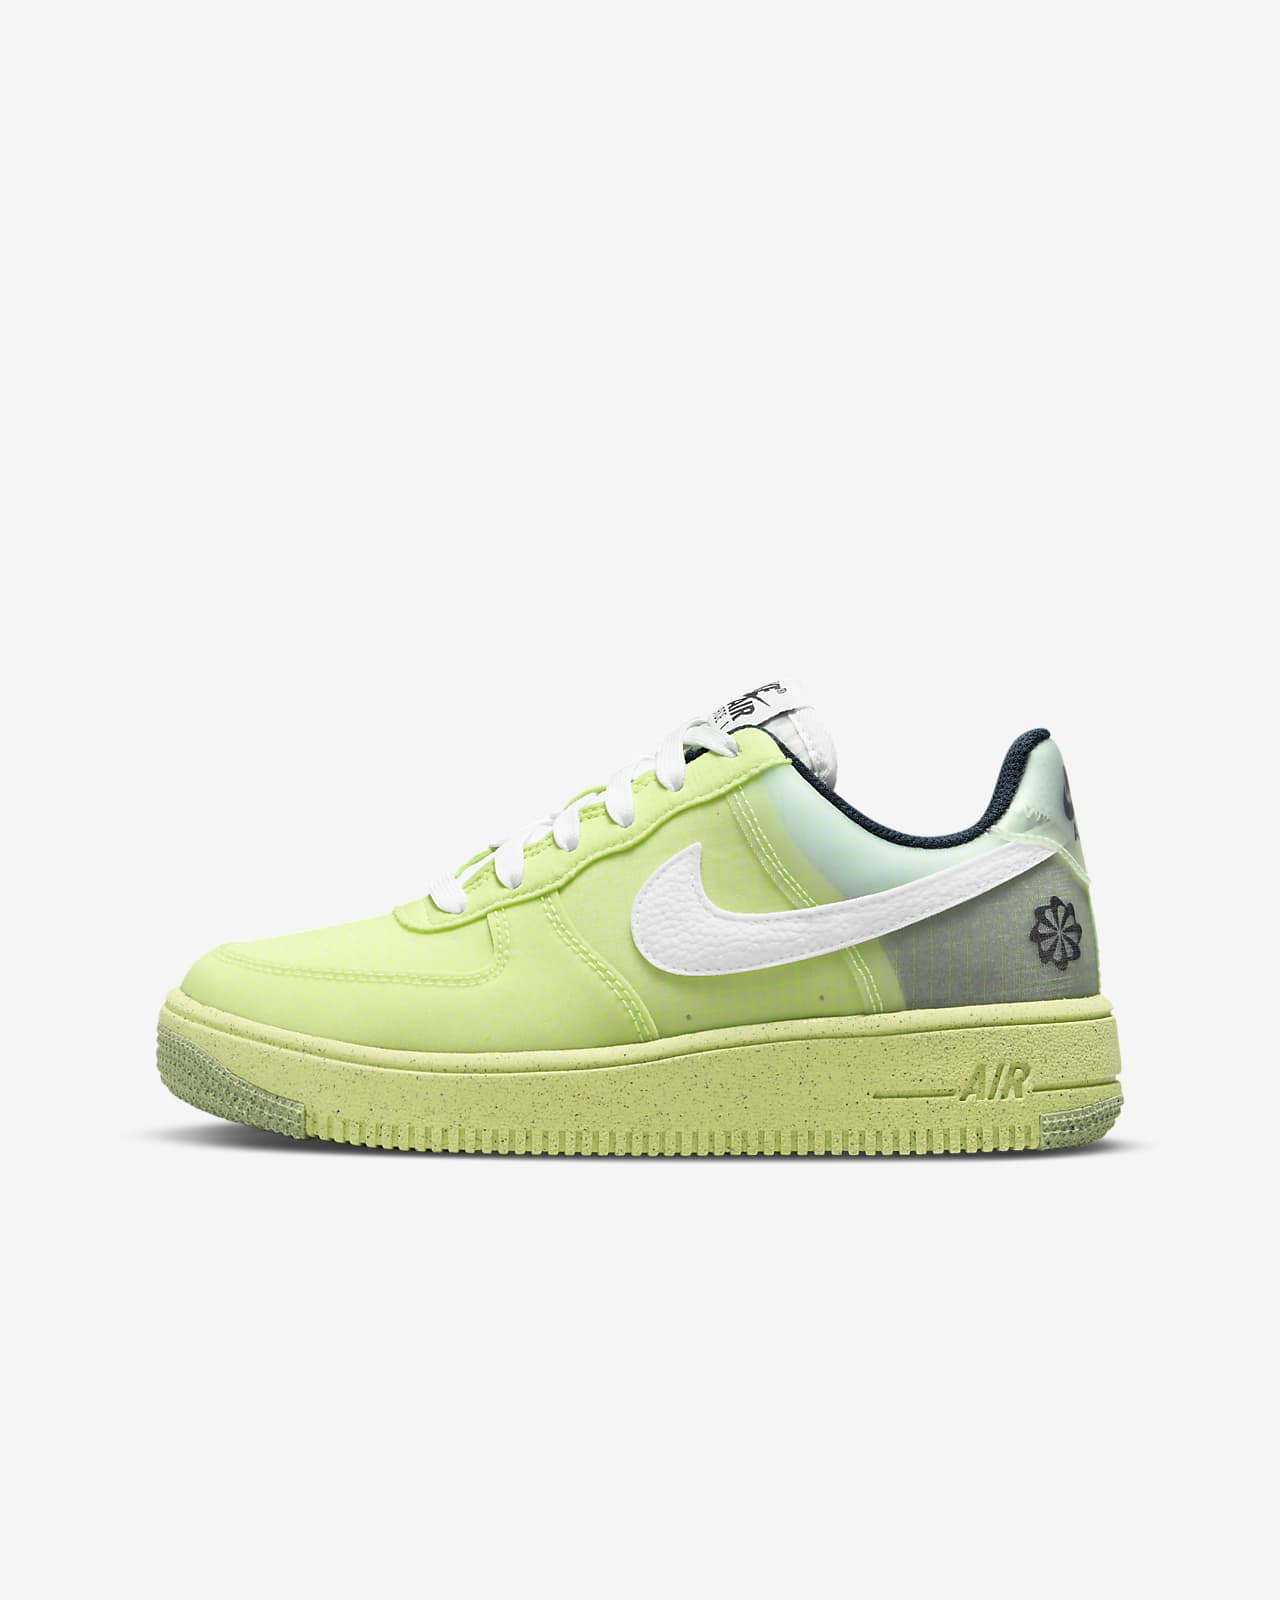 Nike Air Force 1 Crater Big Kids' Shoes